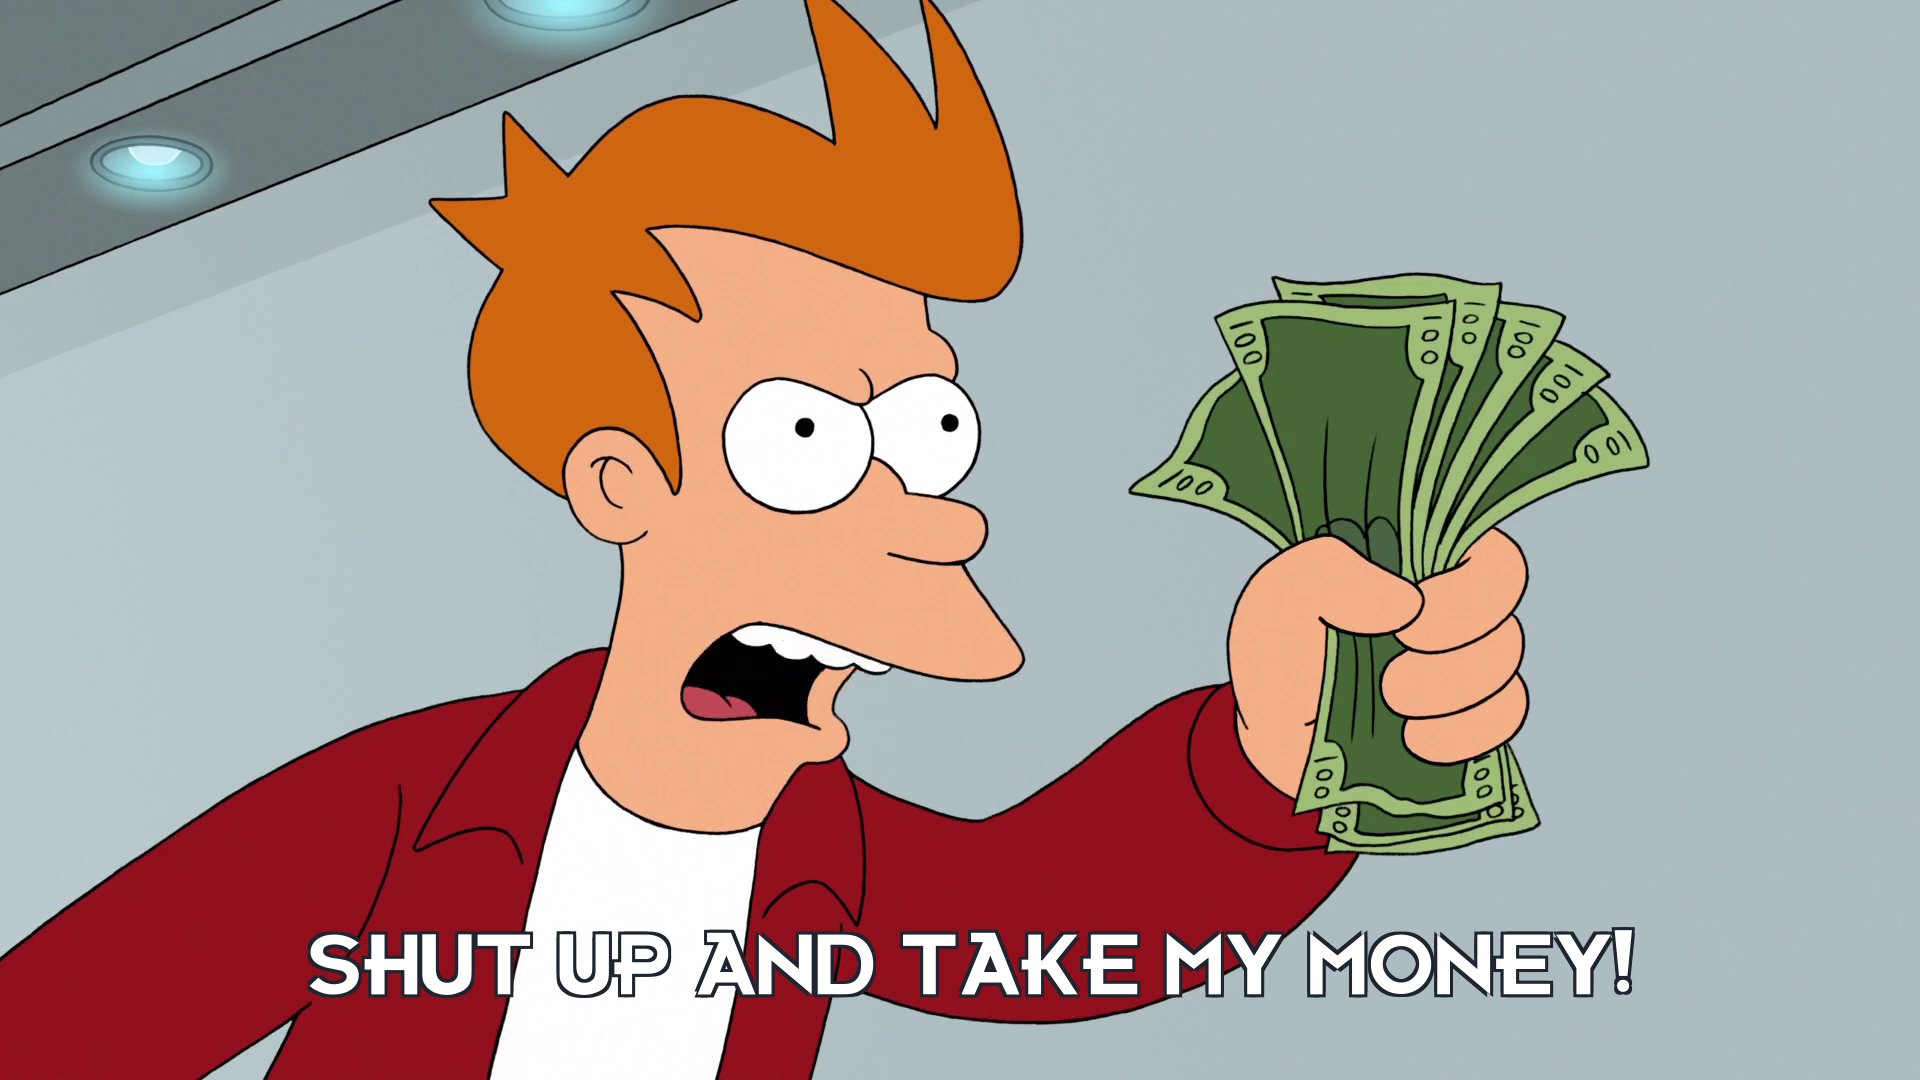 Philip J Fry: Shut up and take my money!